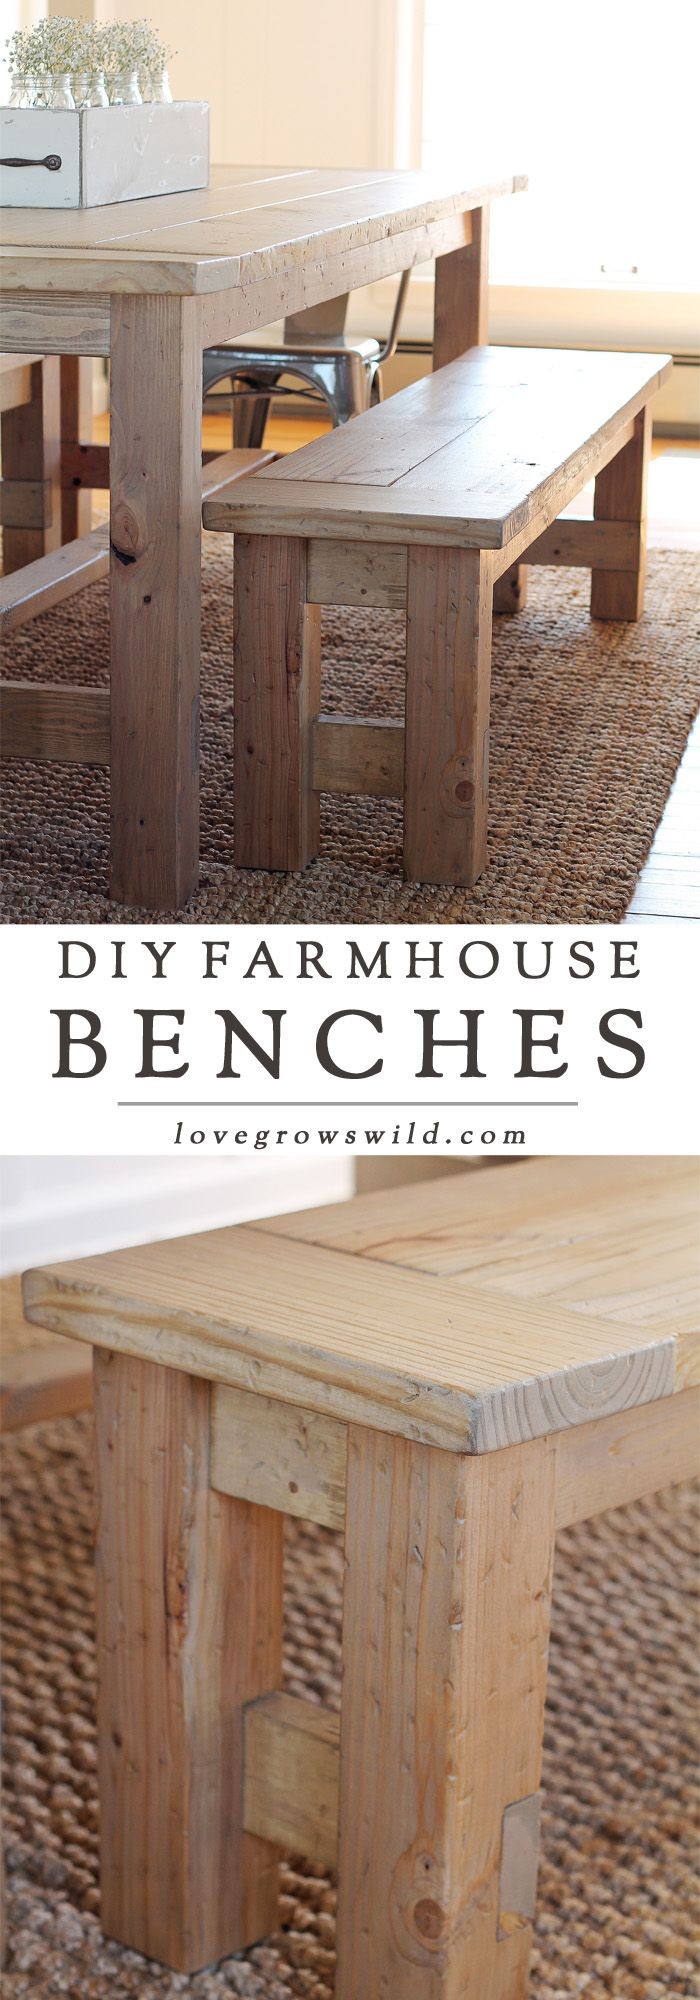 Room Learn How To Build An Easy DIY Farmhouse Bench